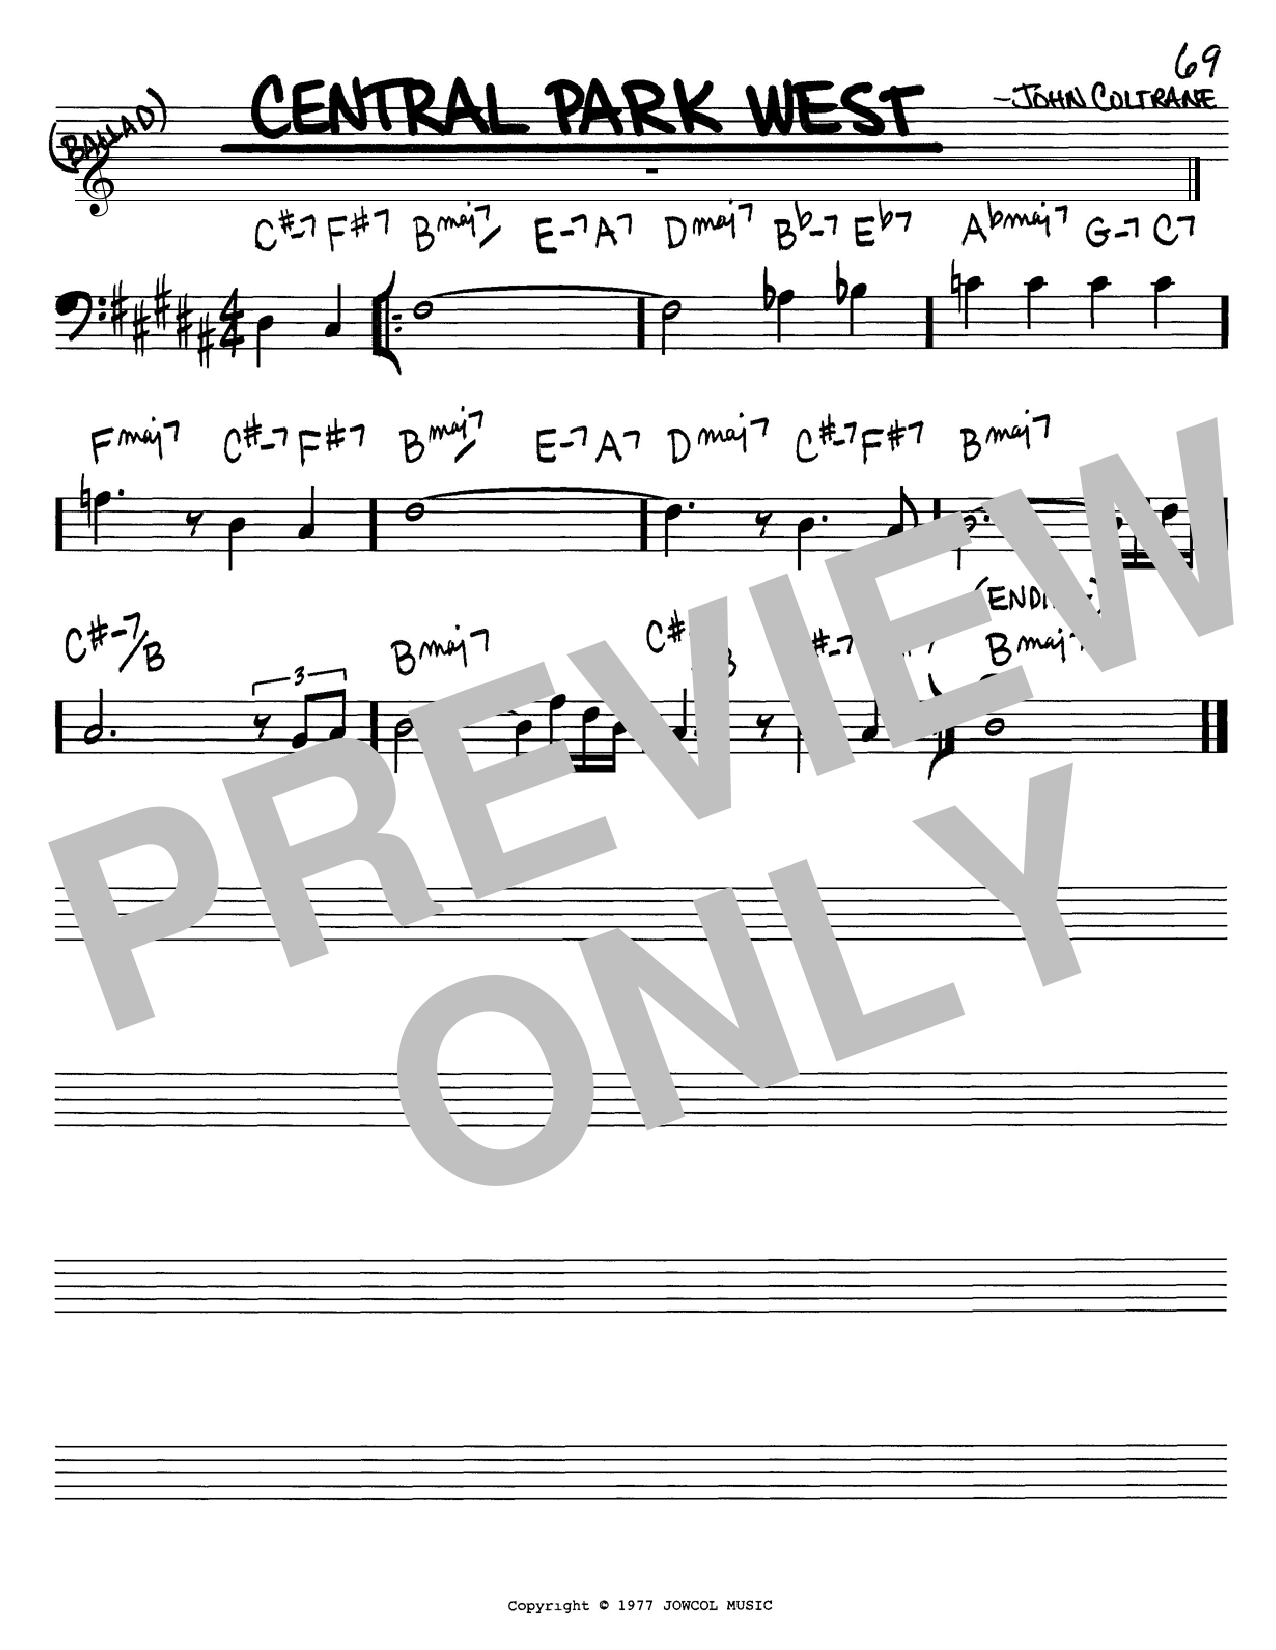 John Coltrane Central Park West sheet music notes and chords. Download Printable PDF.